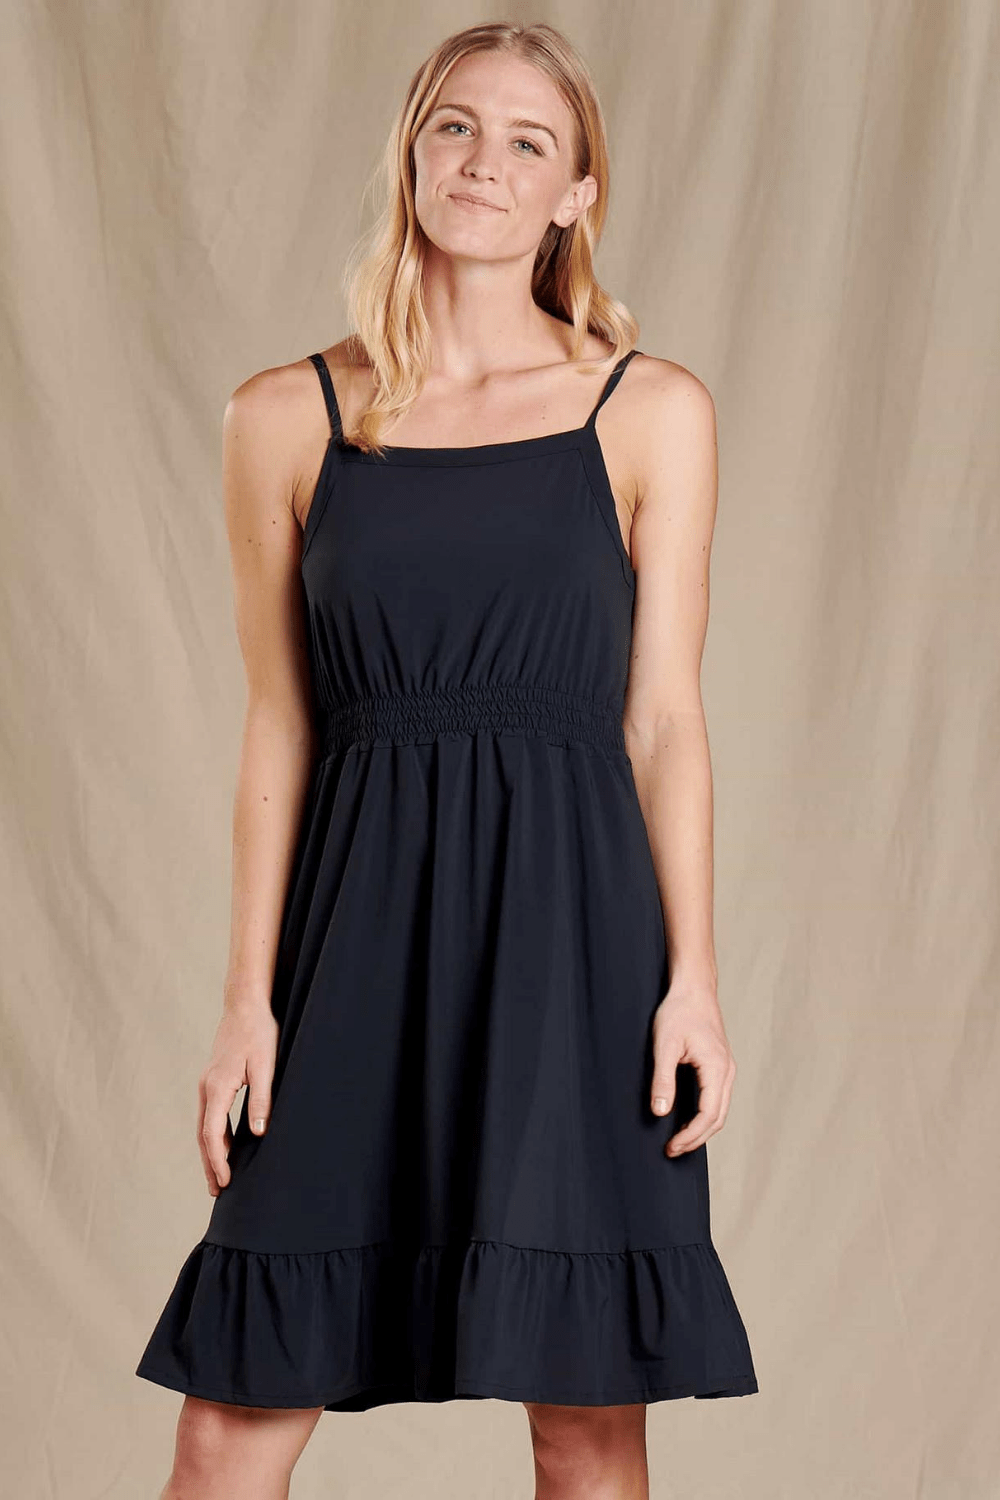 Toad & Co. Women's Dresses Sunkissed Bella Dress • Black